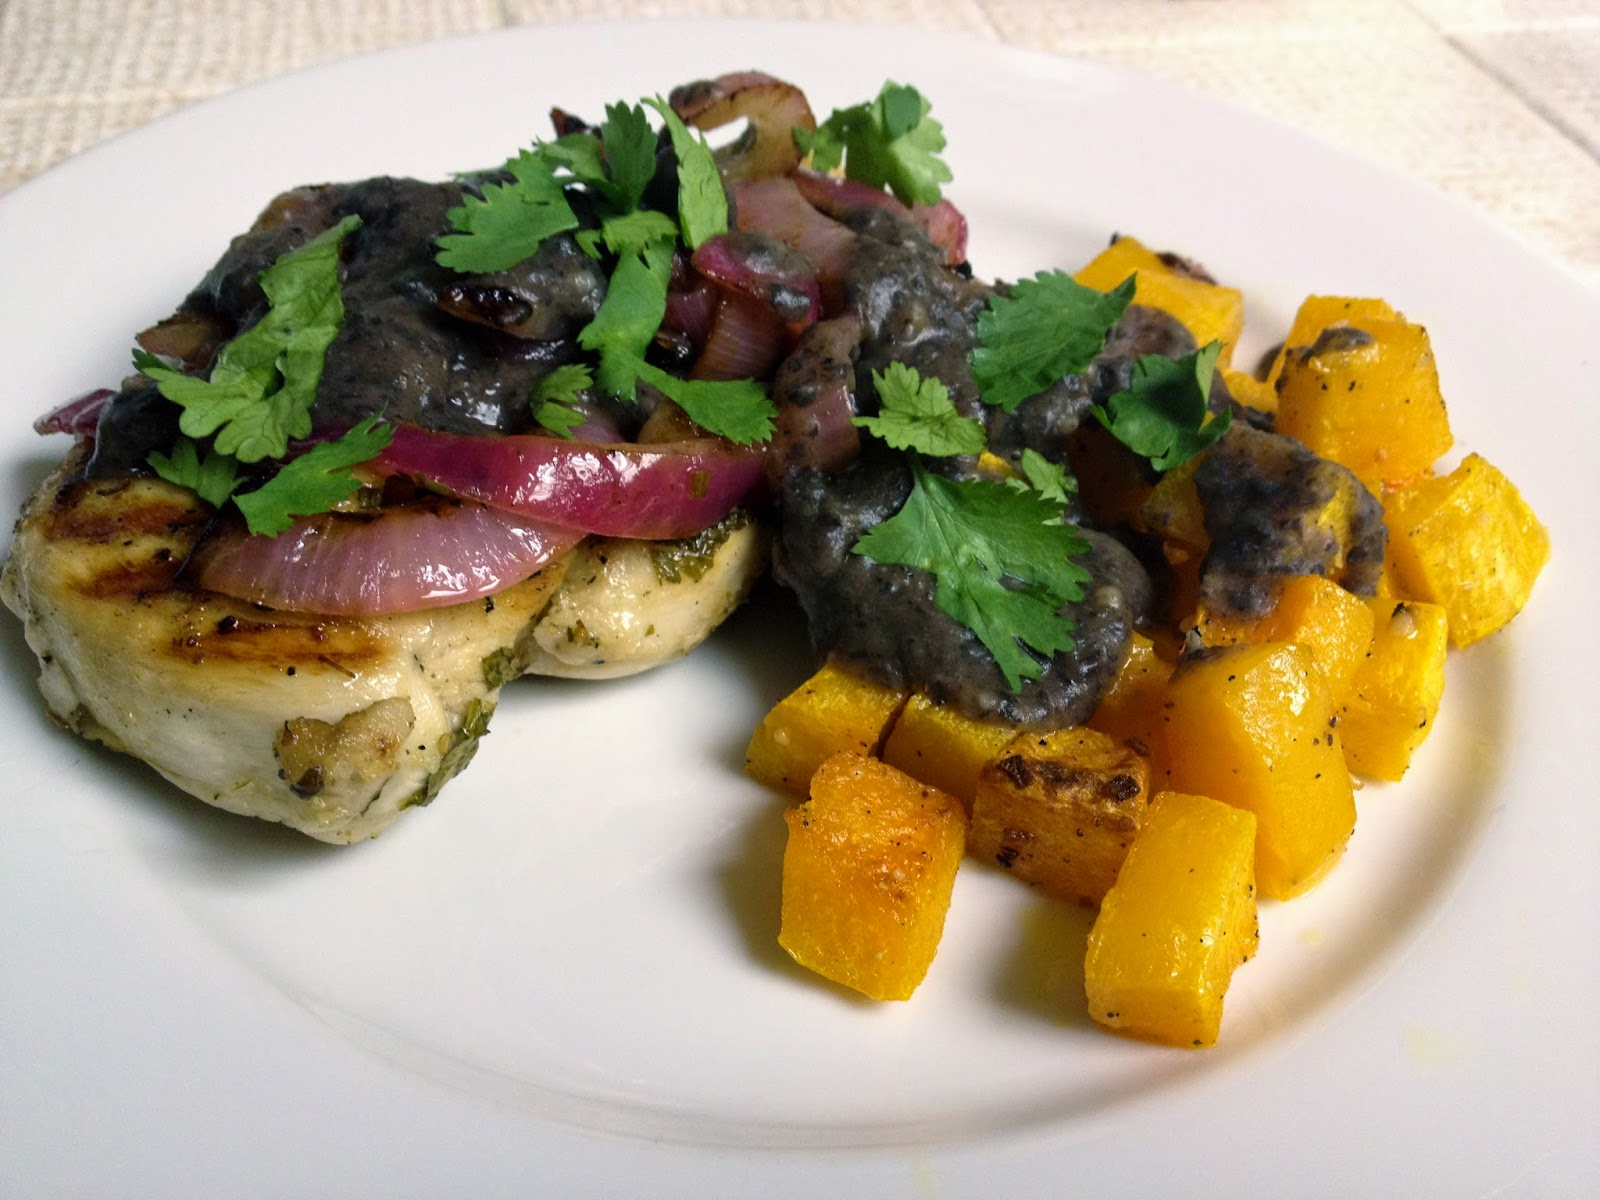 Foodie Journey: Grilled Lime-Chicken with Black Bean Sauce and Squash